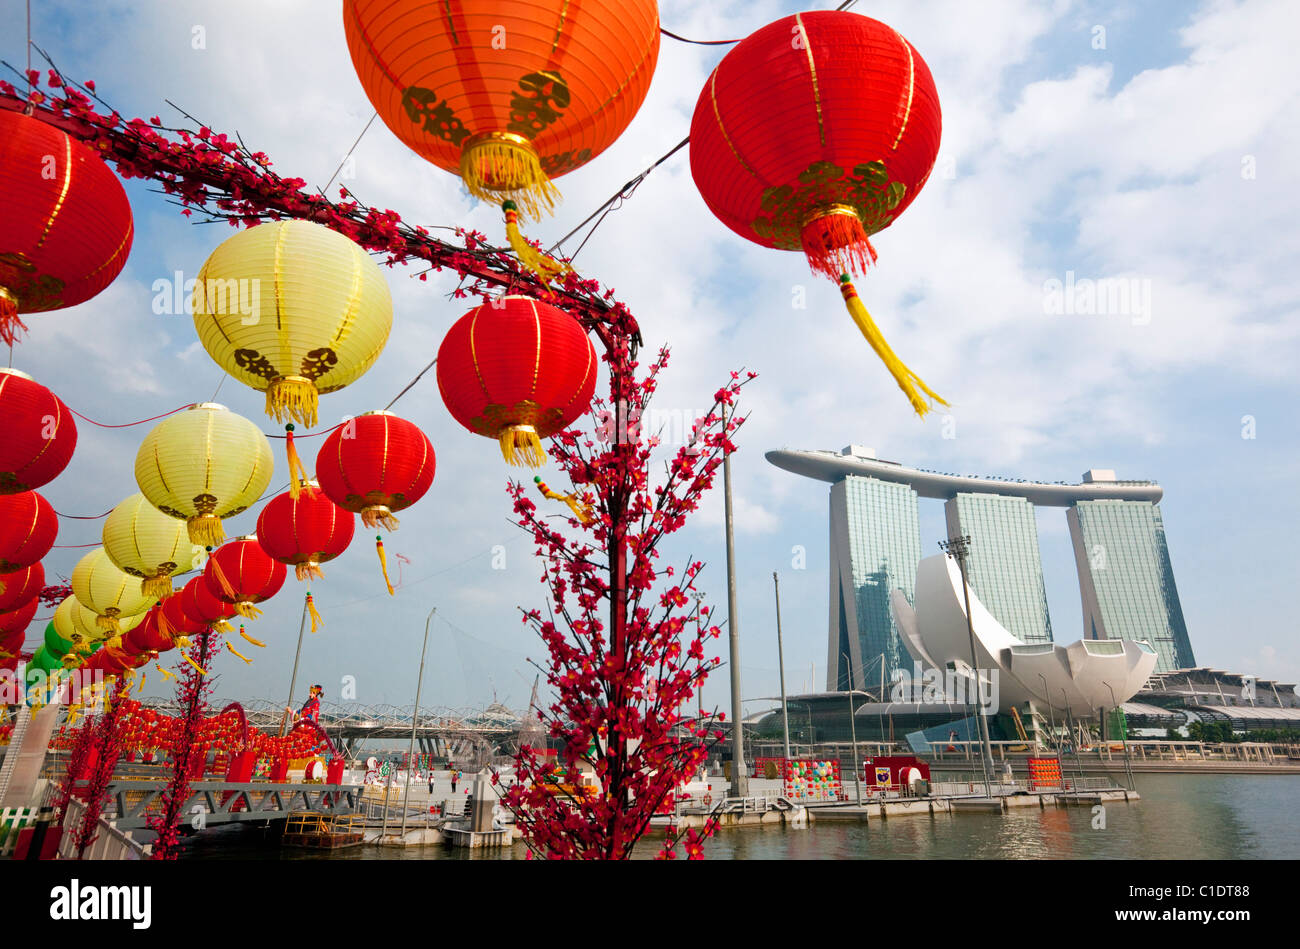 The Marina Bay Sands Singapore and Chinese New Year decorations on the waterfront.  Marina Bay, Singapore - Stock Image